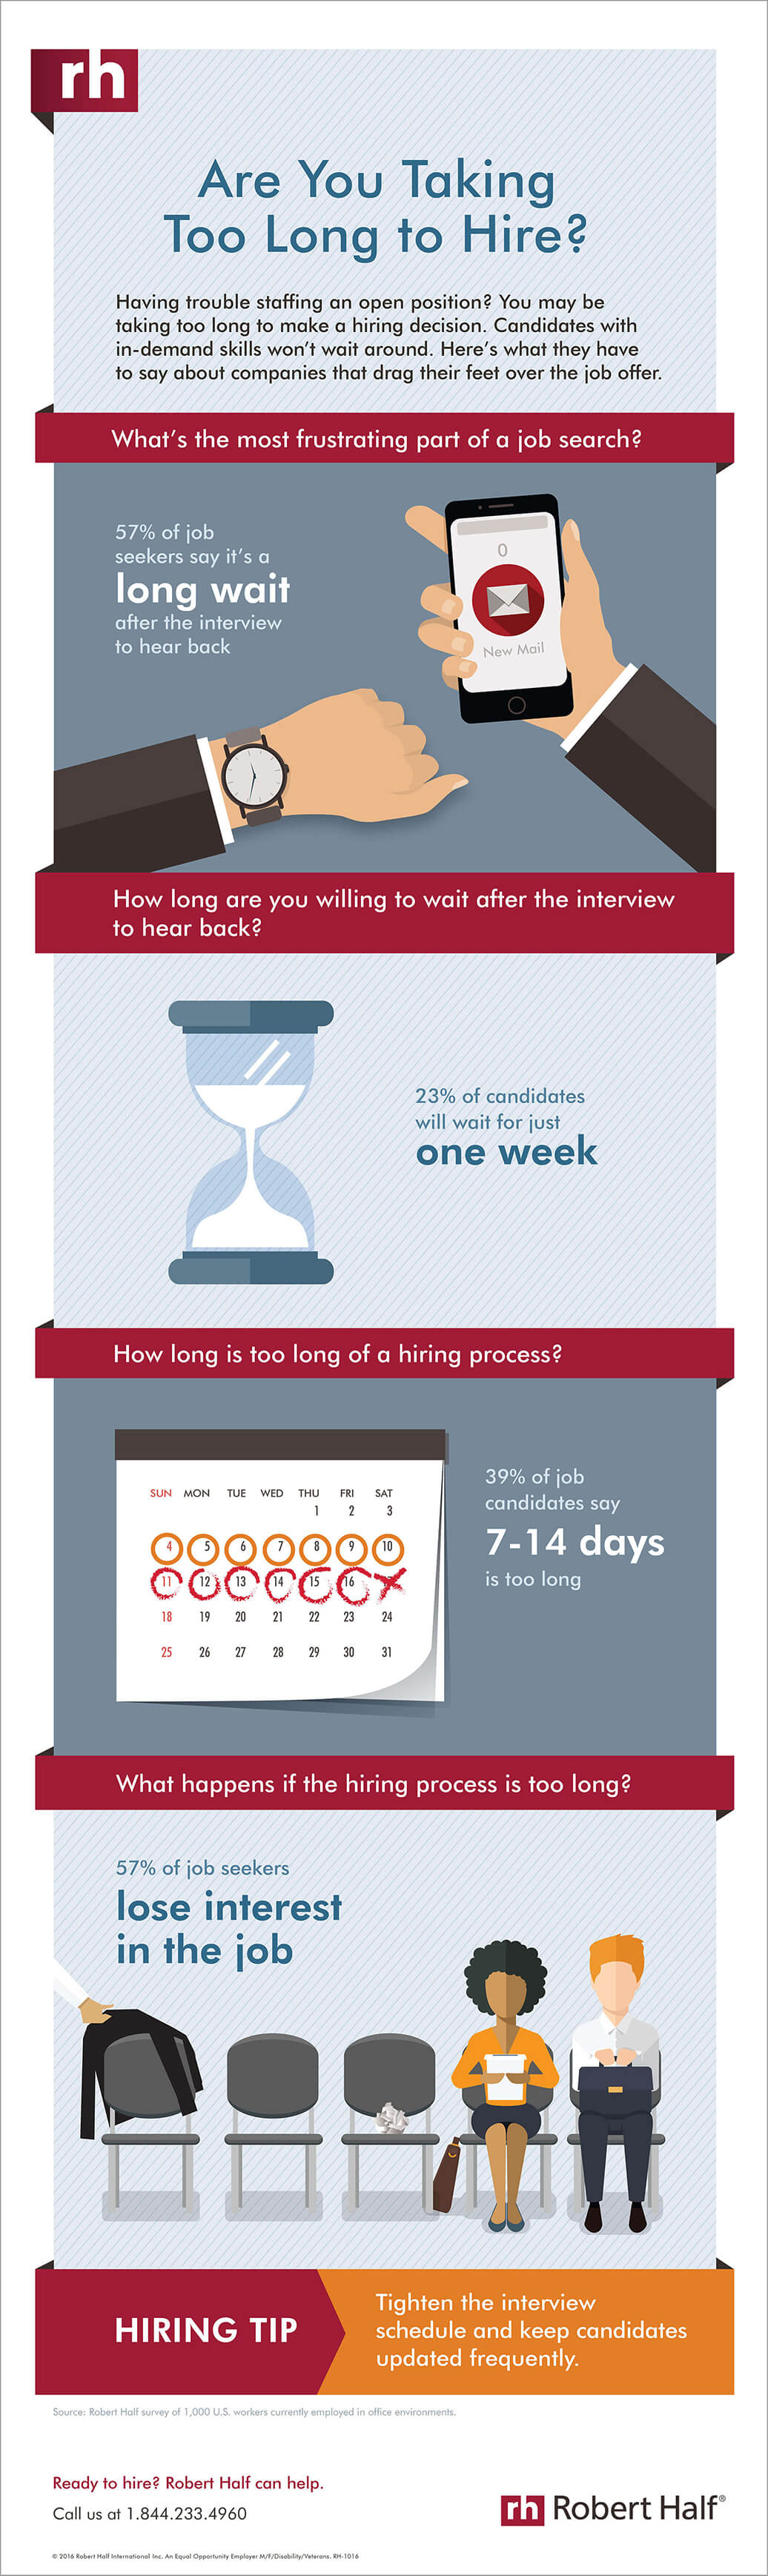 Are You Taking Too Long to Hire? Infographic